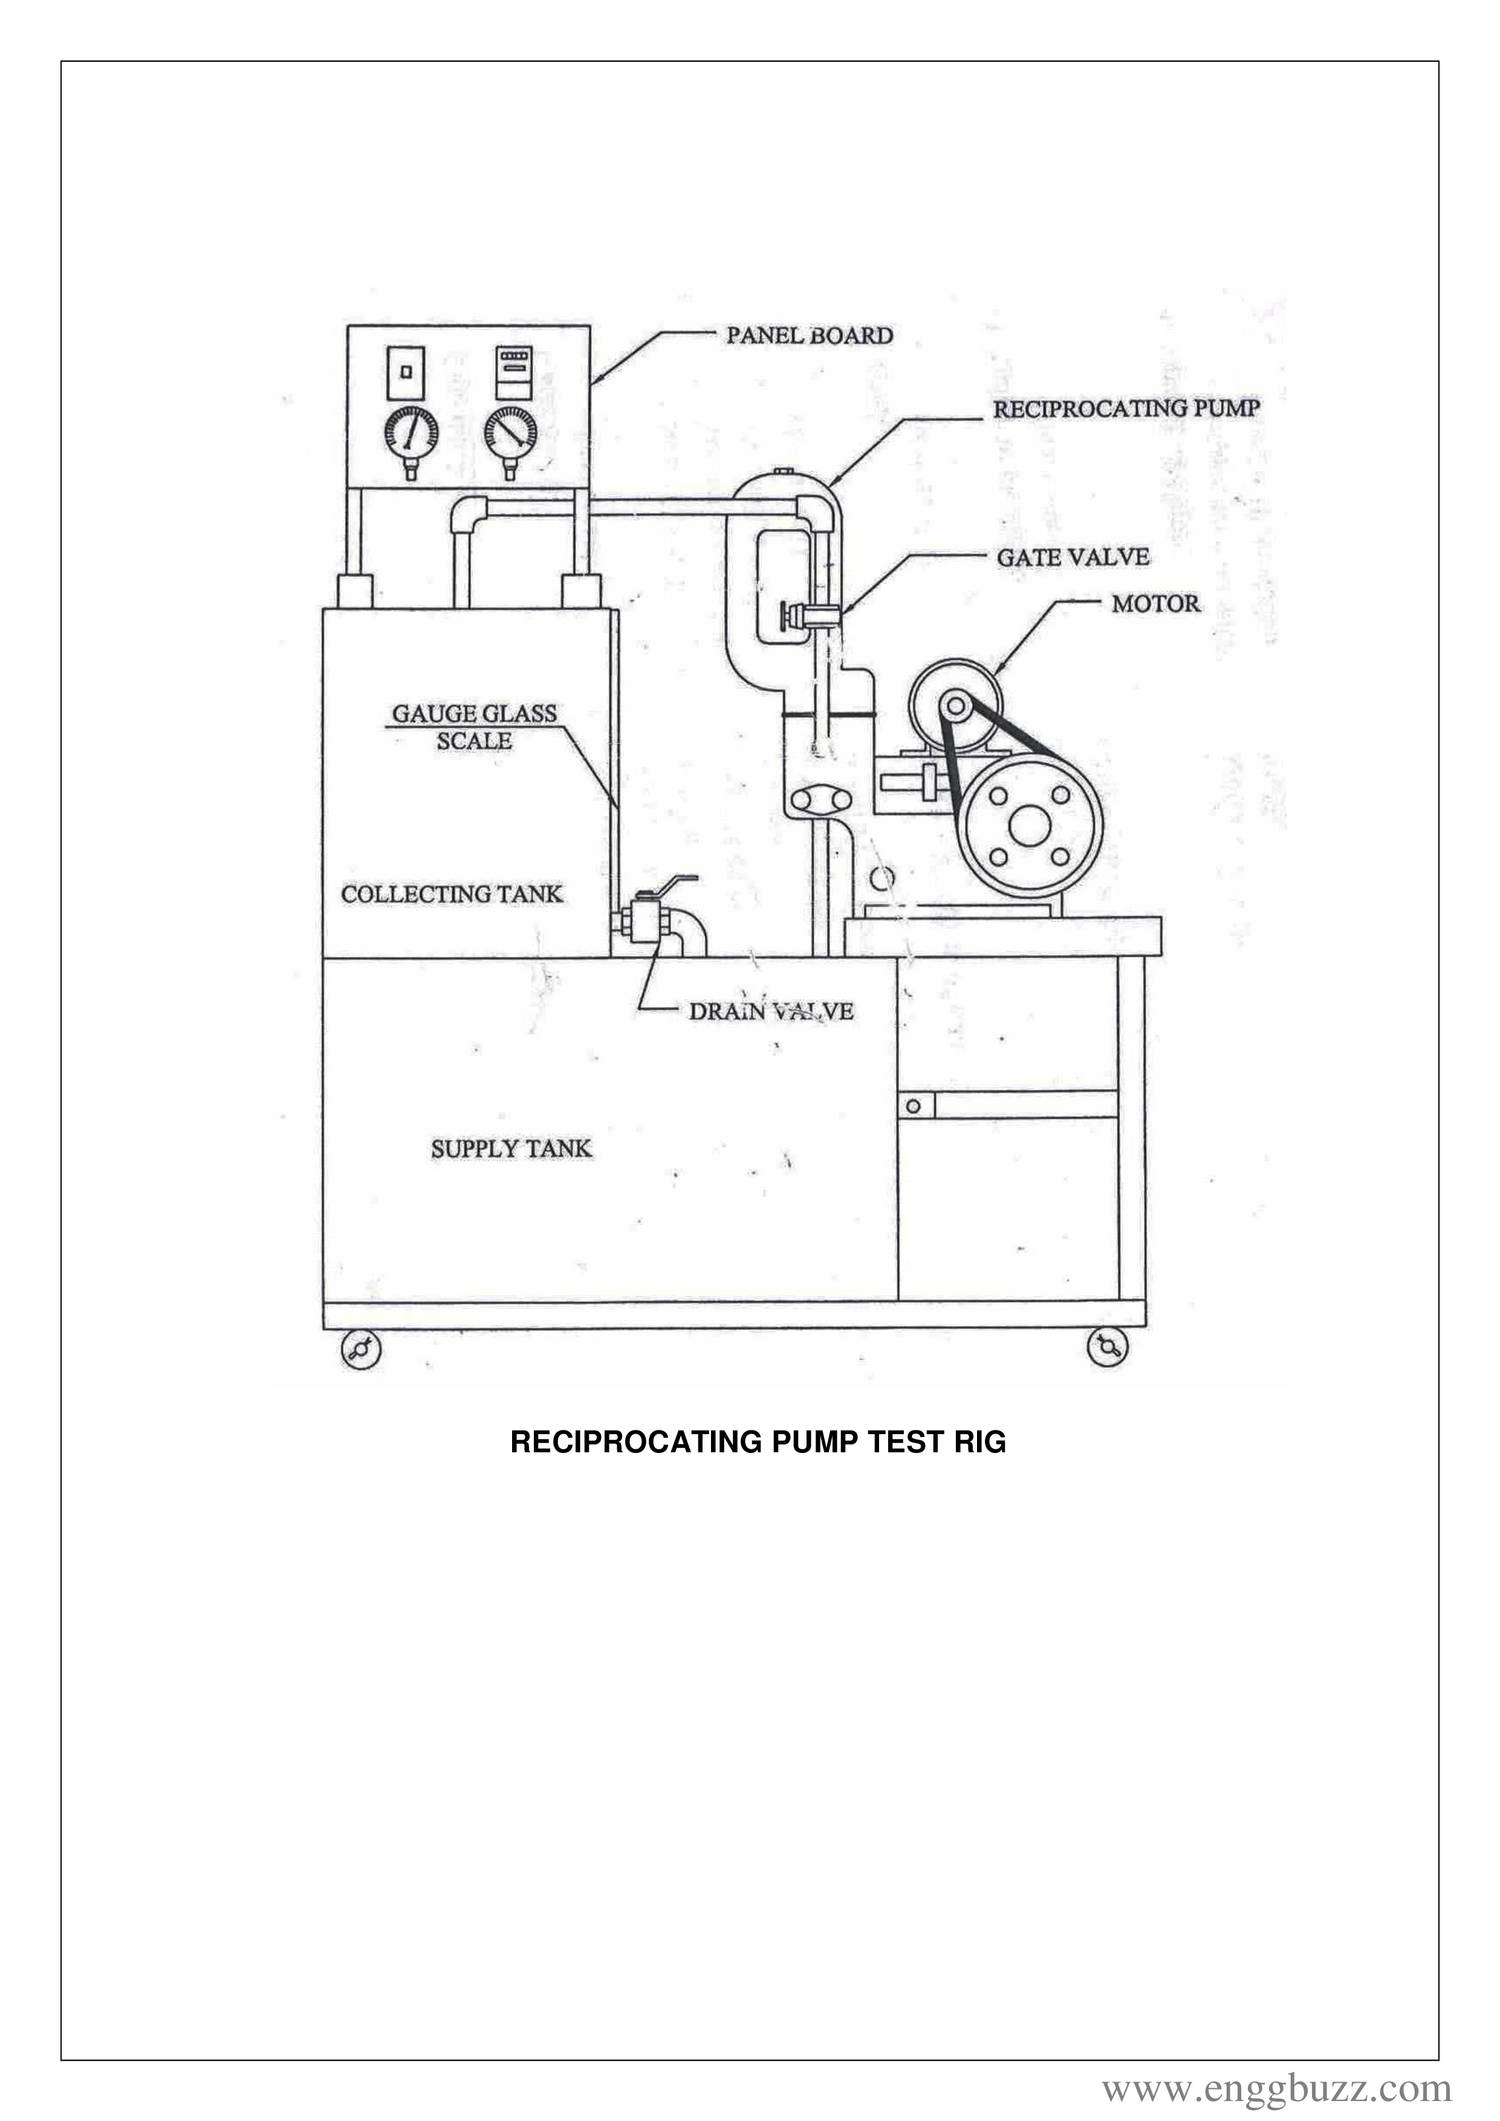 CONDUCTING EXPERIMENTS AND DRAWING THE CHARACTERISTICS CURVES OF RECIPROCATING  PUMP.pdf - DocDroid